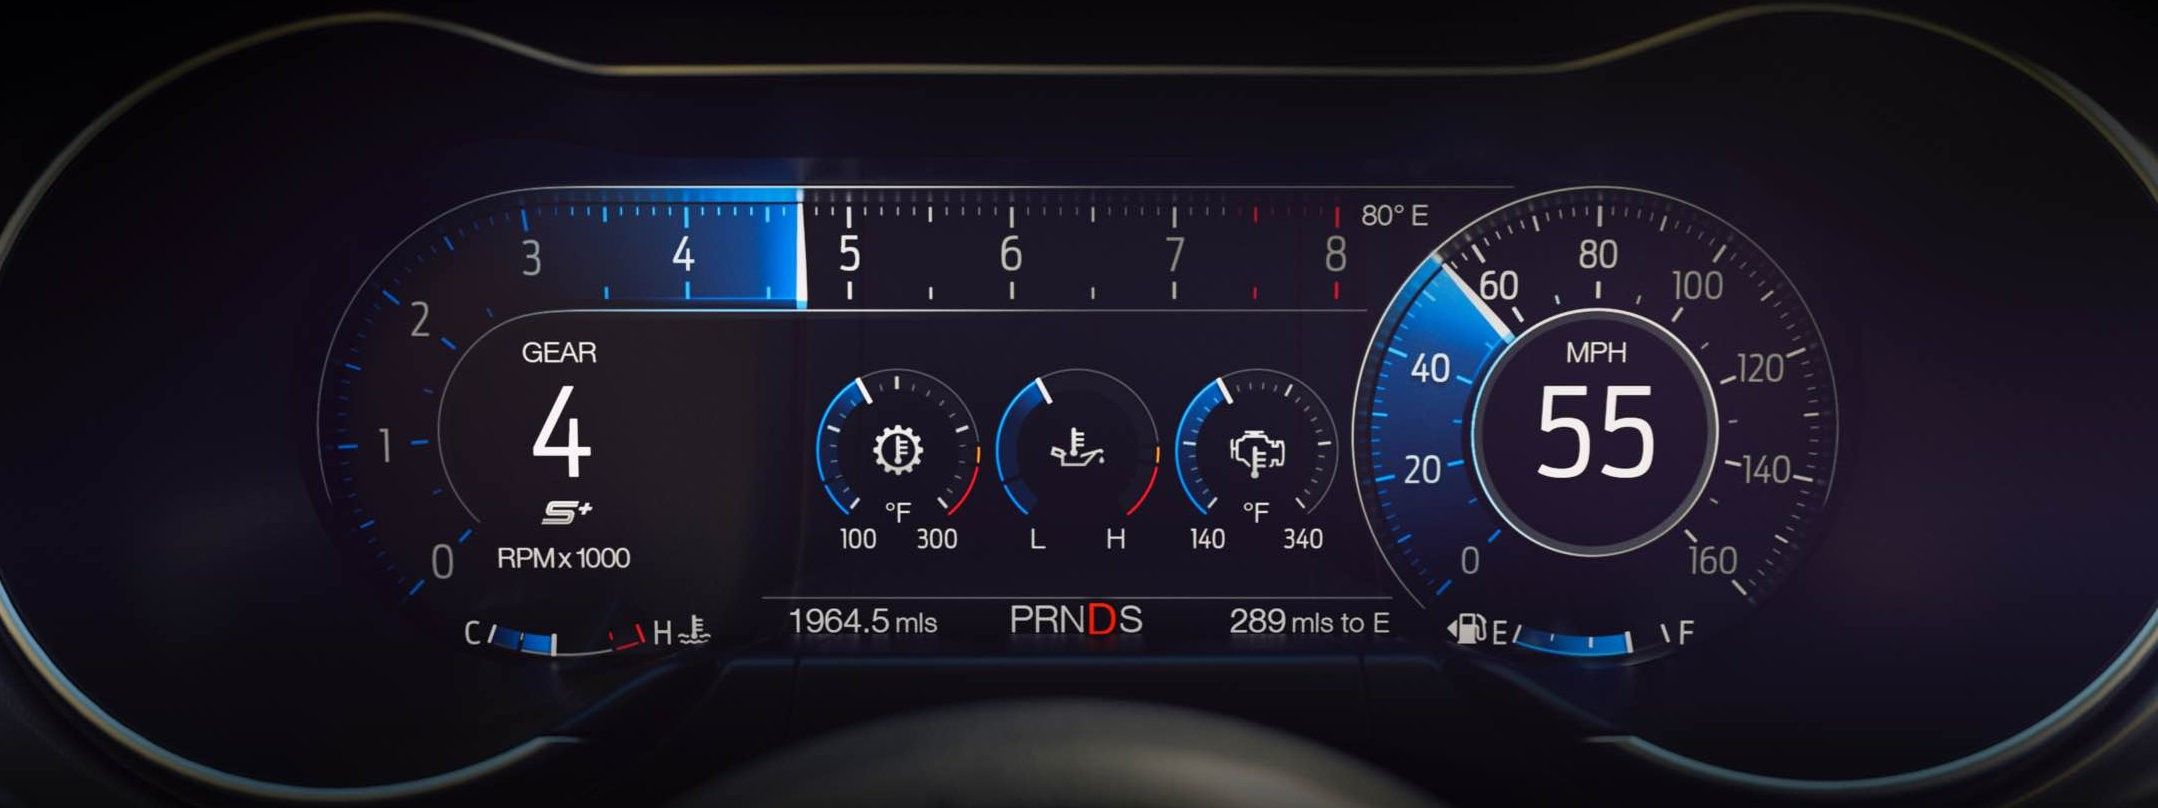 2018 Ford Mustang Optional 12 Lcd Digital Instrument Cluster Shown In Sport View Mustang Interior Ford Mustang Ford Mustang Gt